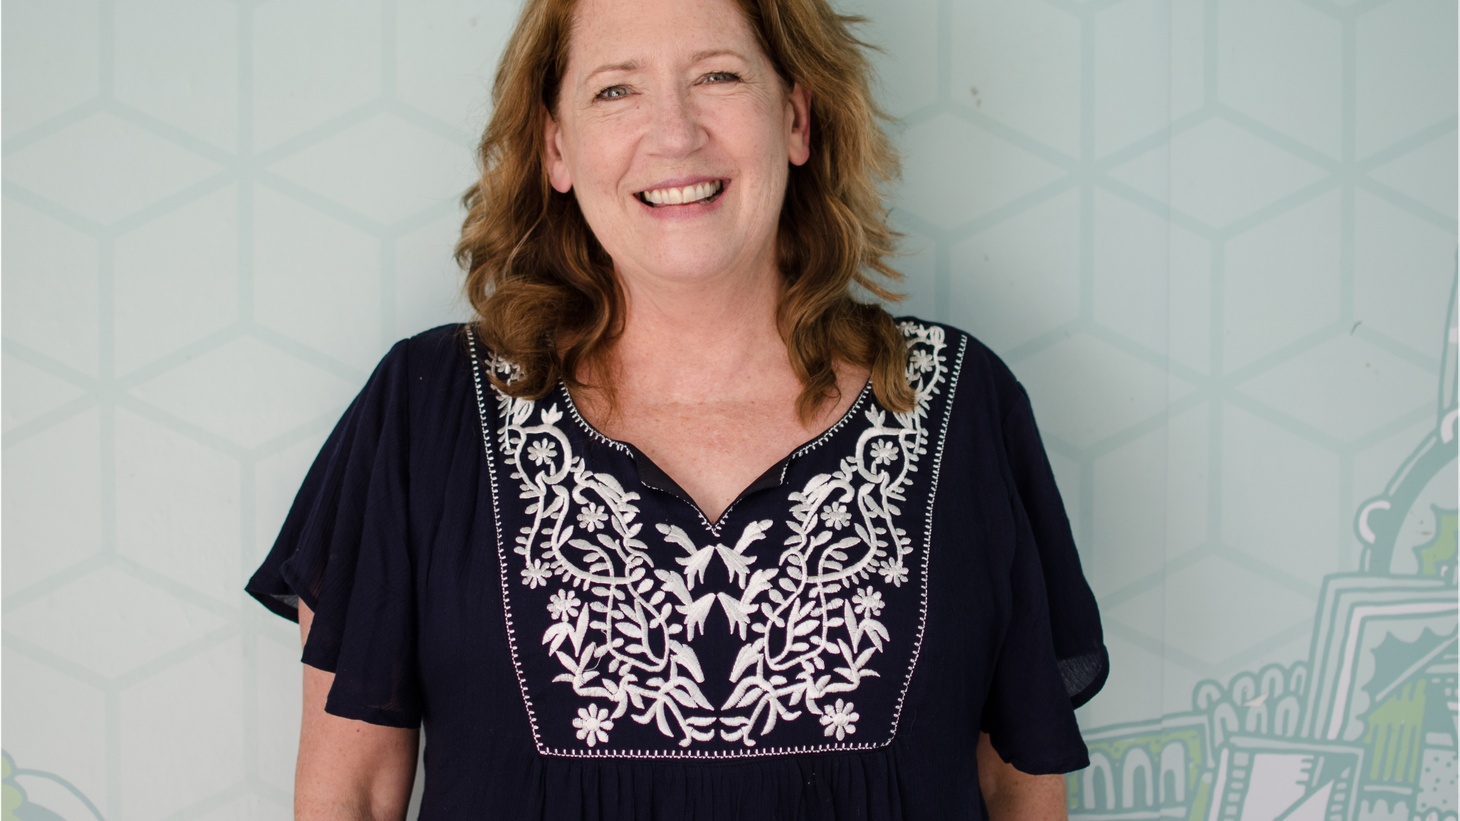 """Ann Dowd earned two Emmy nominations this year. In """"The Handmaid's Tale,"""" she plays Aunt Lydia, a religious zealot who indoctrinates the handmaids. In """"The Leftovers,"""" she plays Patti Levin, a cult leader who wants the world to live in perpetual mourning."""